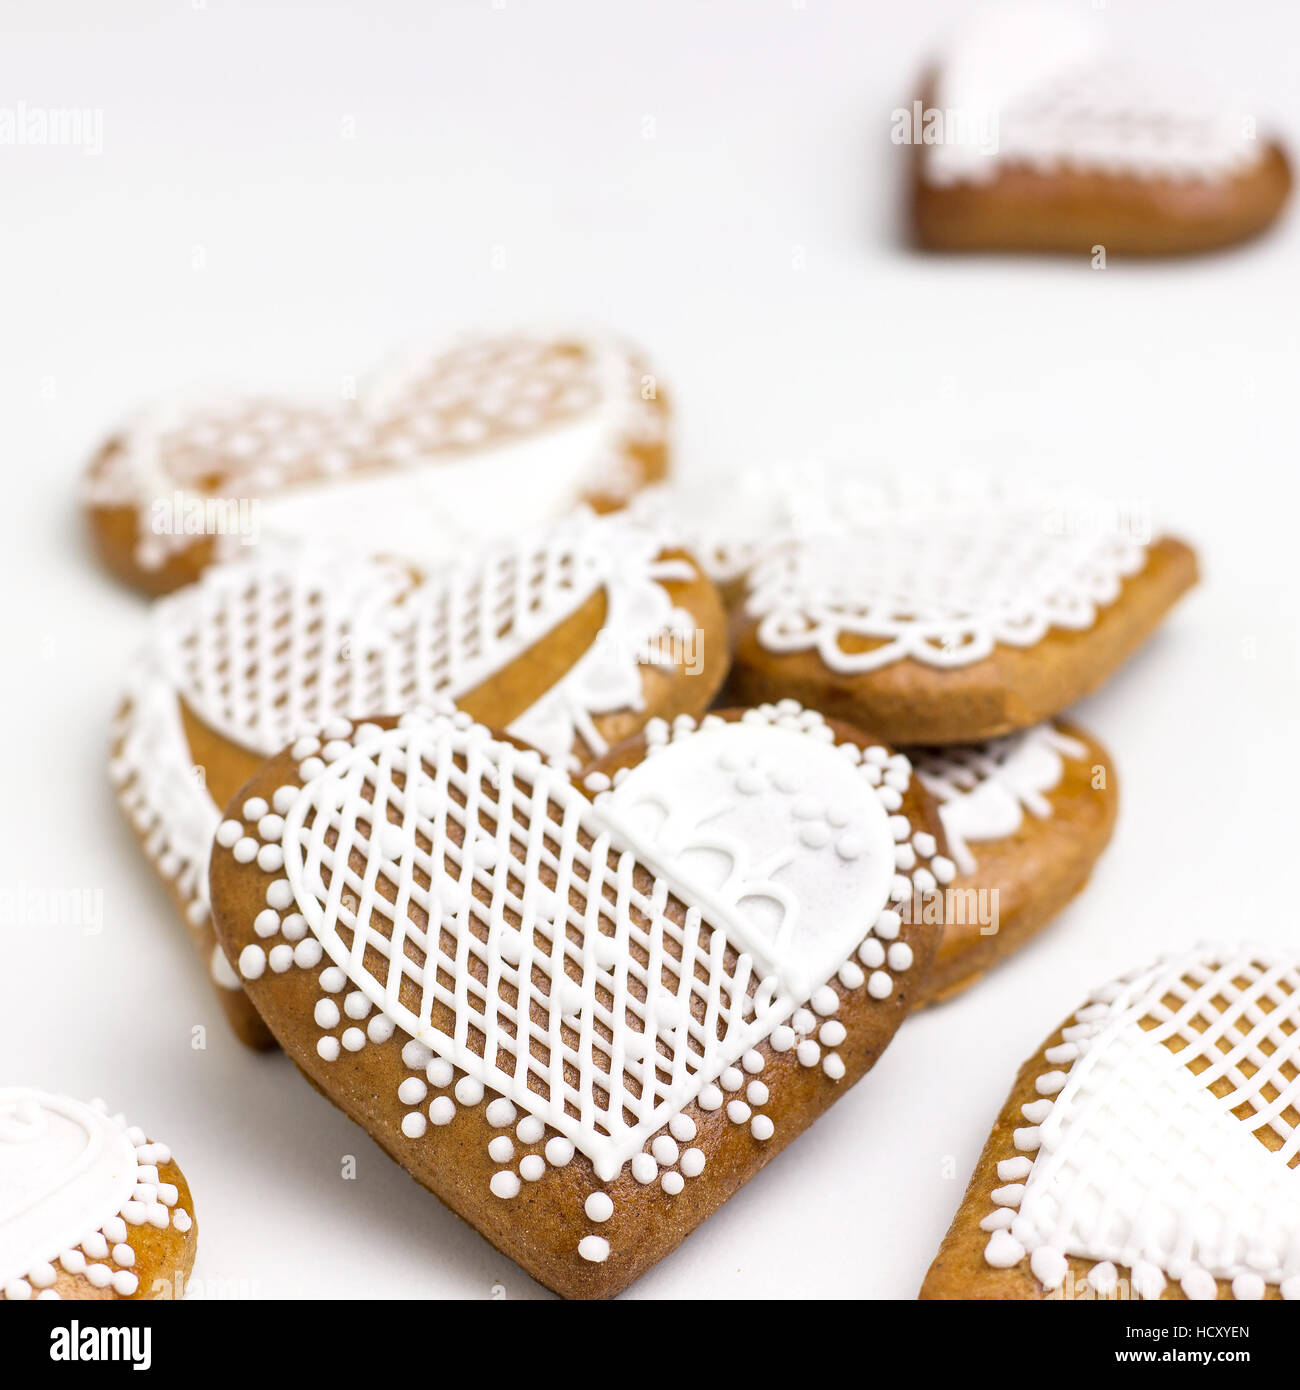 Homemade Gingerbread Cookies with White Icing Stock Photo